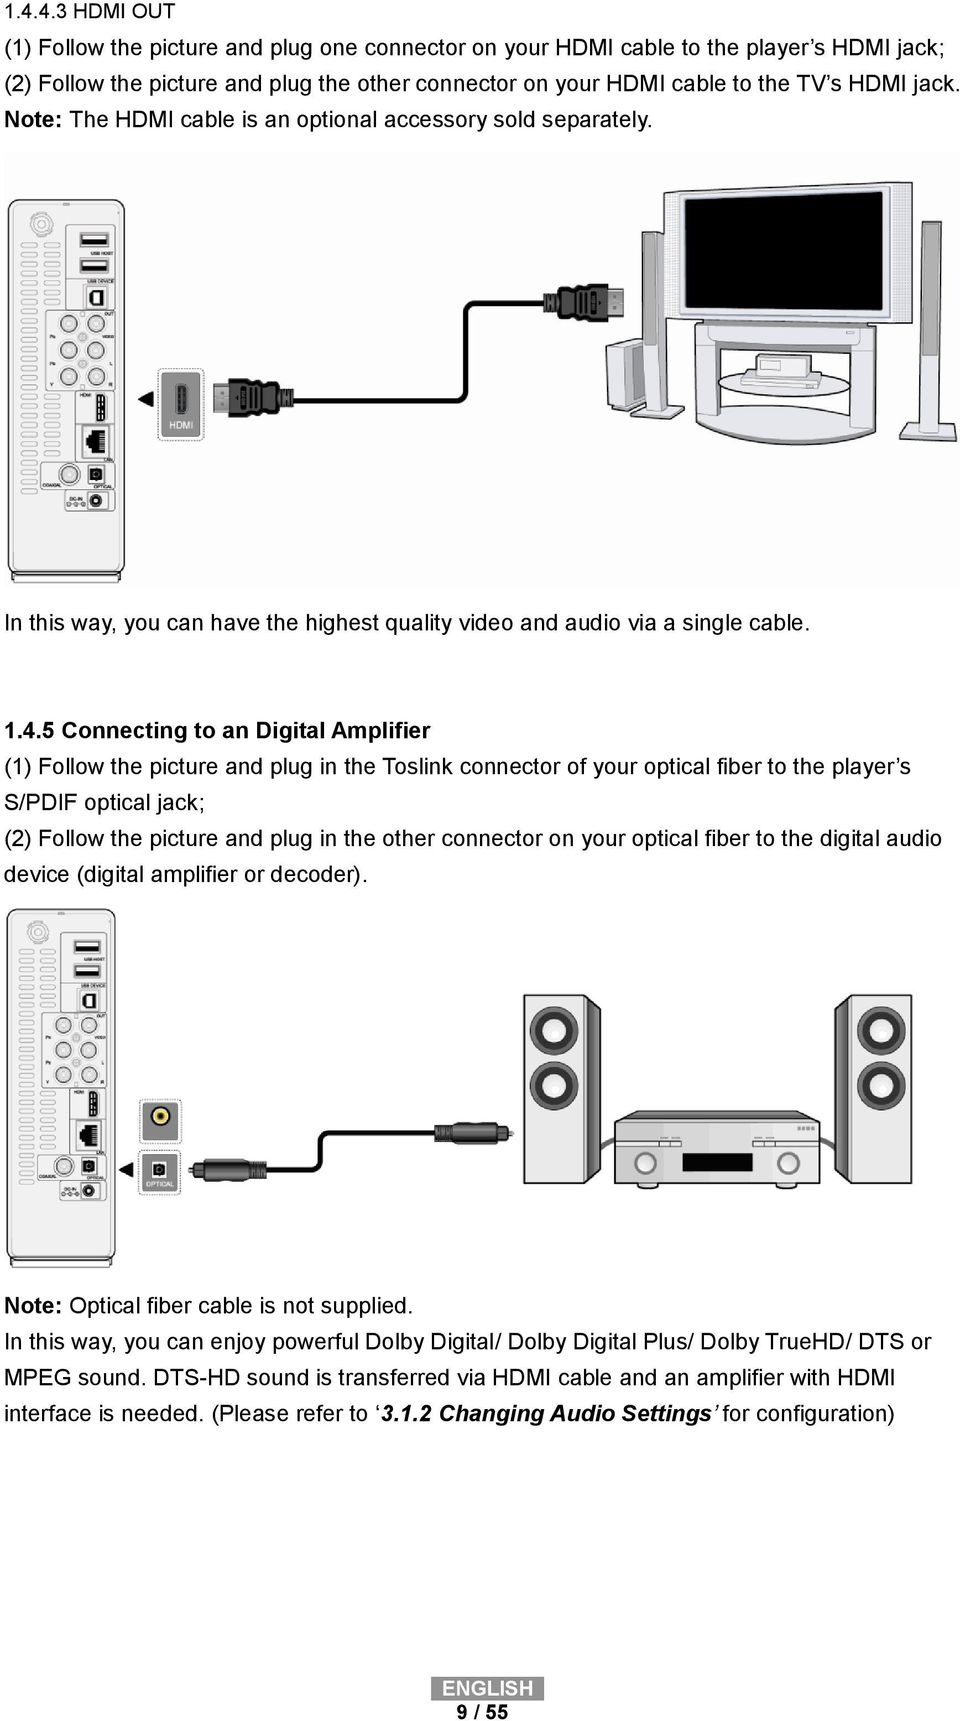 5 Connecting to an Digital Amplifier (1) Follow the picture and plug in the Toslink connector of your optical fiber to the player s S/PDIF optical jack; (2) Follow the picture and plug in the other